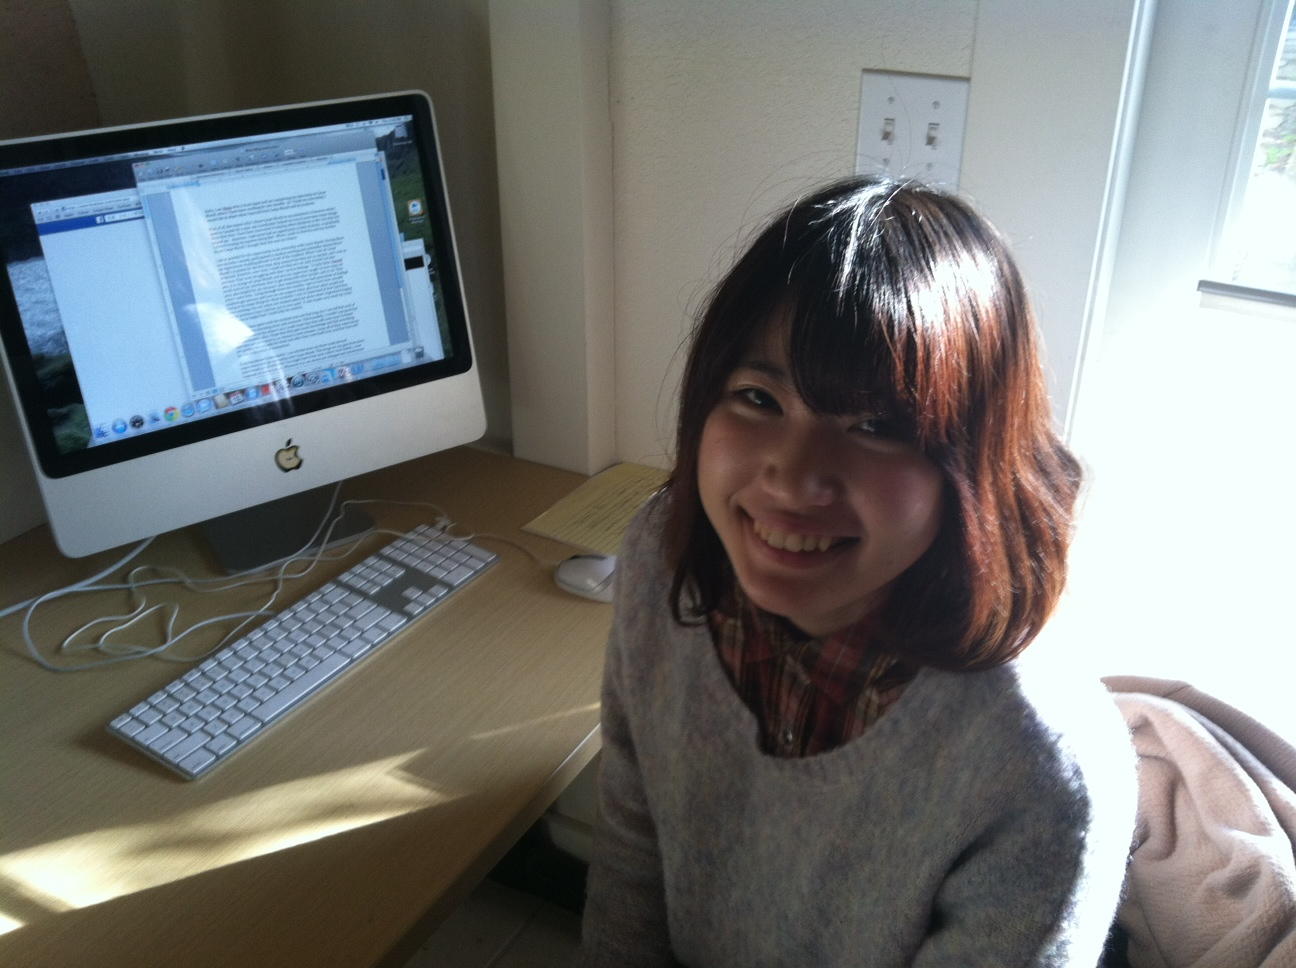 Mana hard at work on her final blog post.